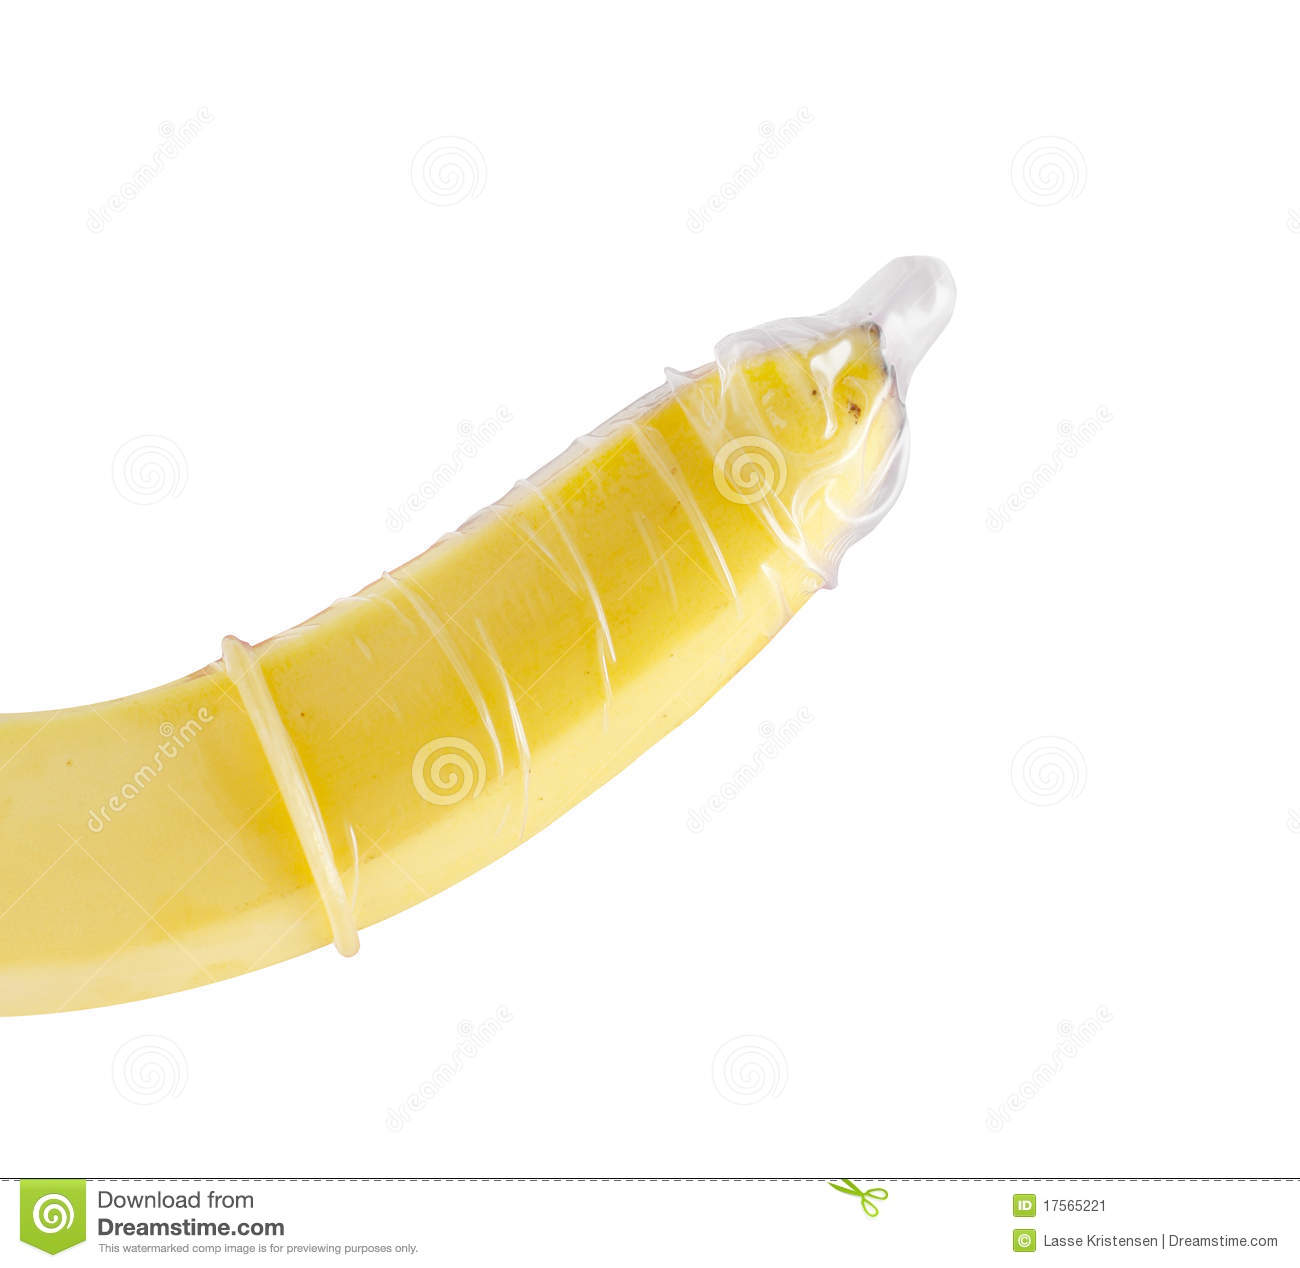 Condom on a banana on white.